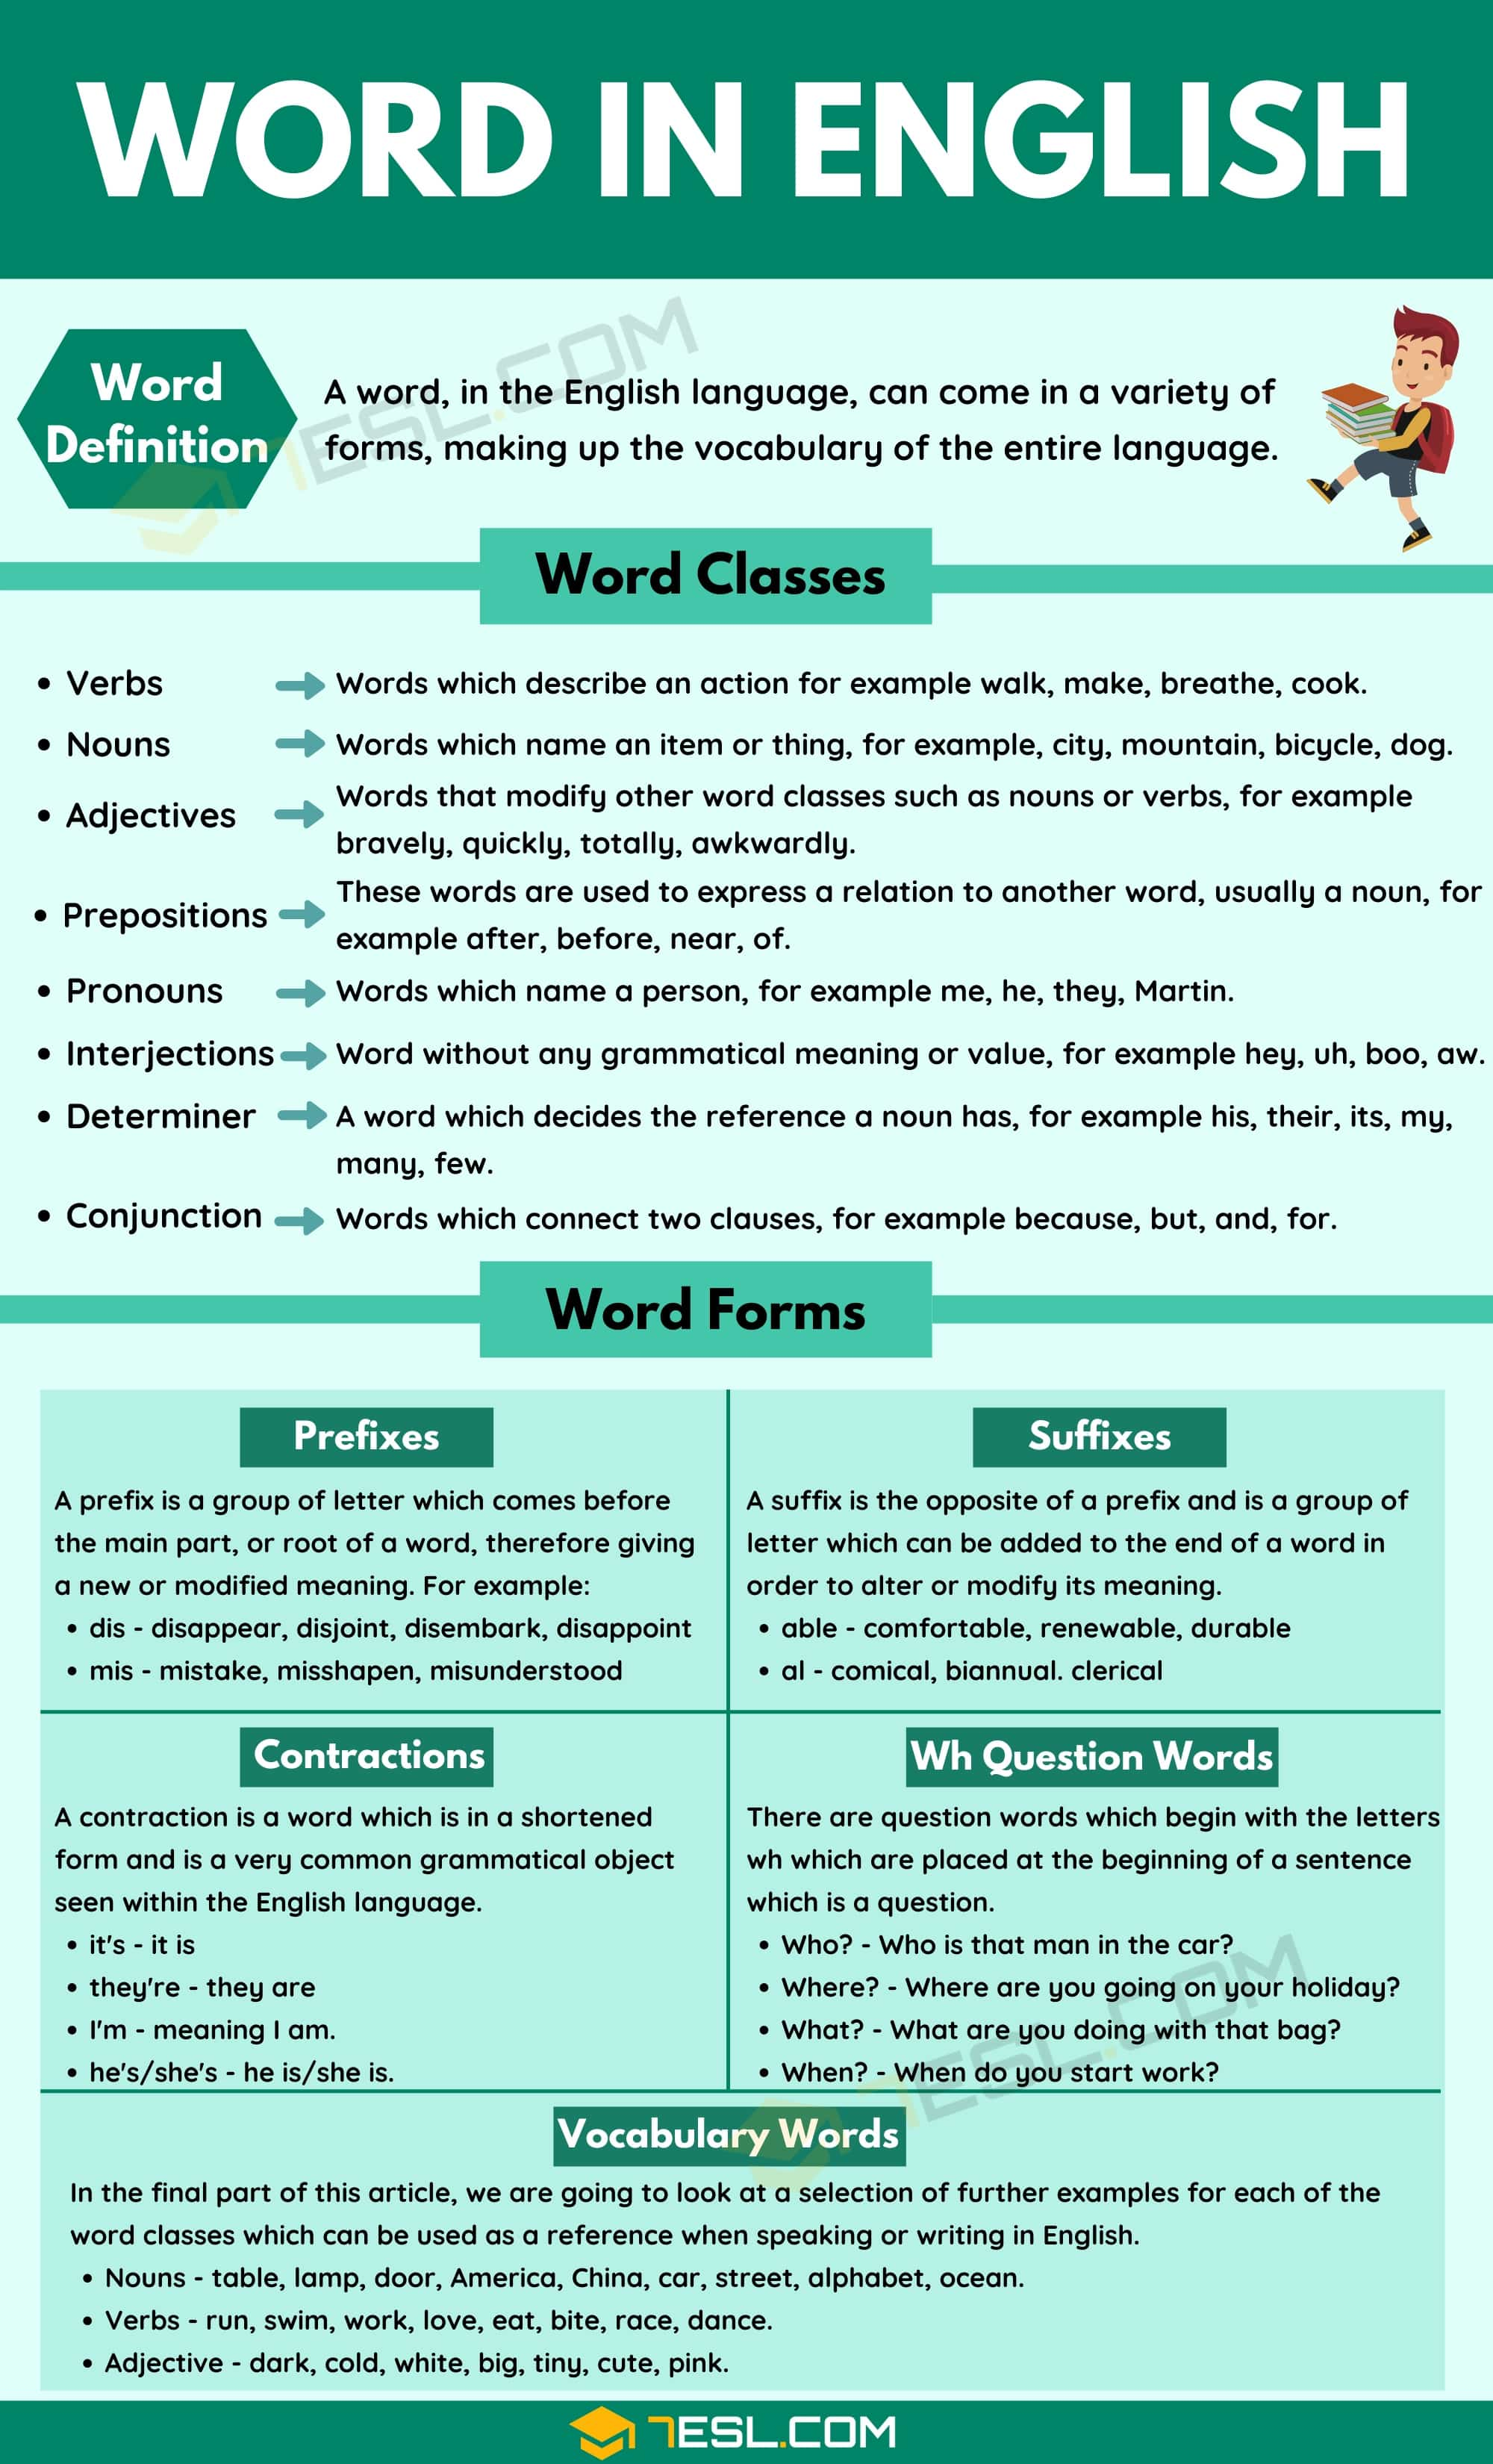 English Words List | Word Classes | Word Forms | Vocabulary Words